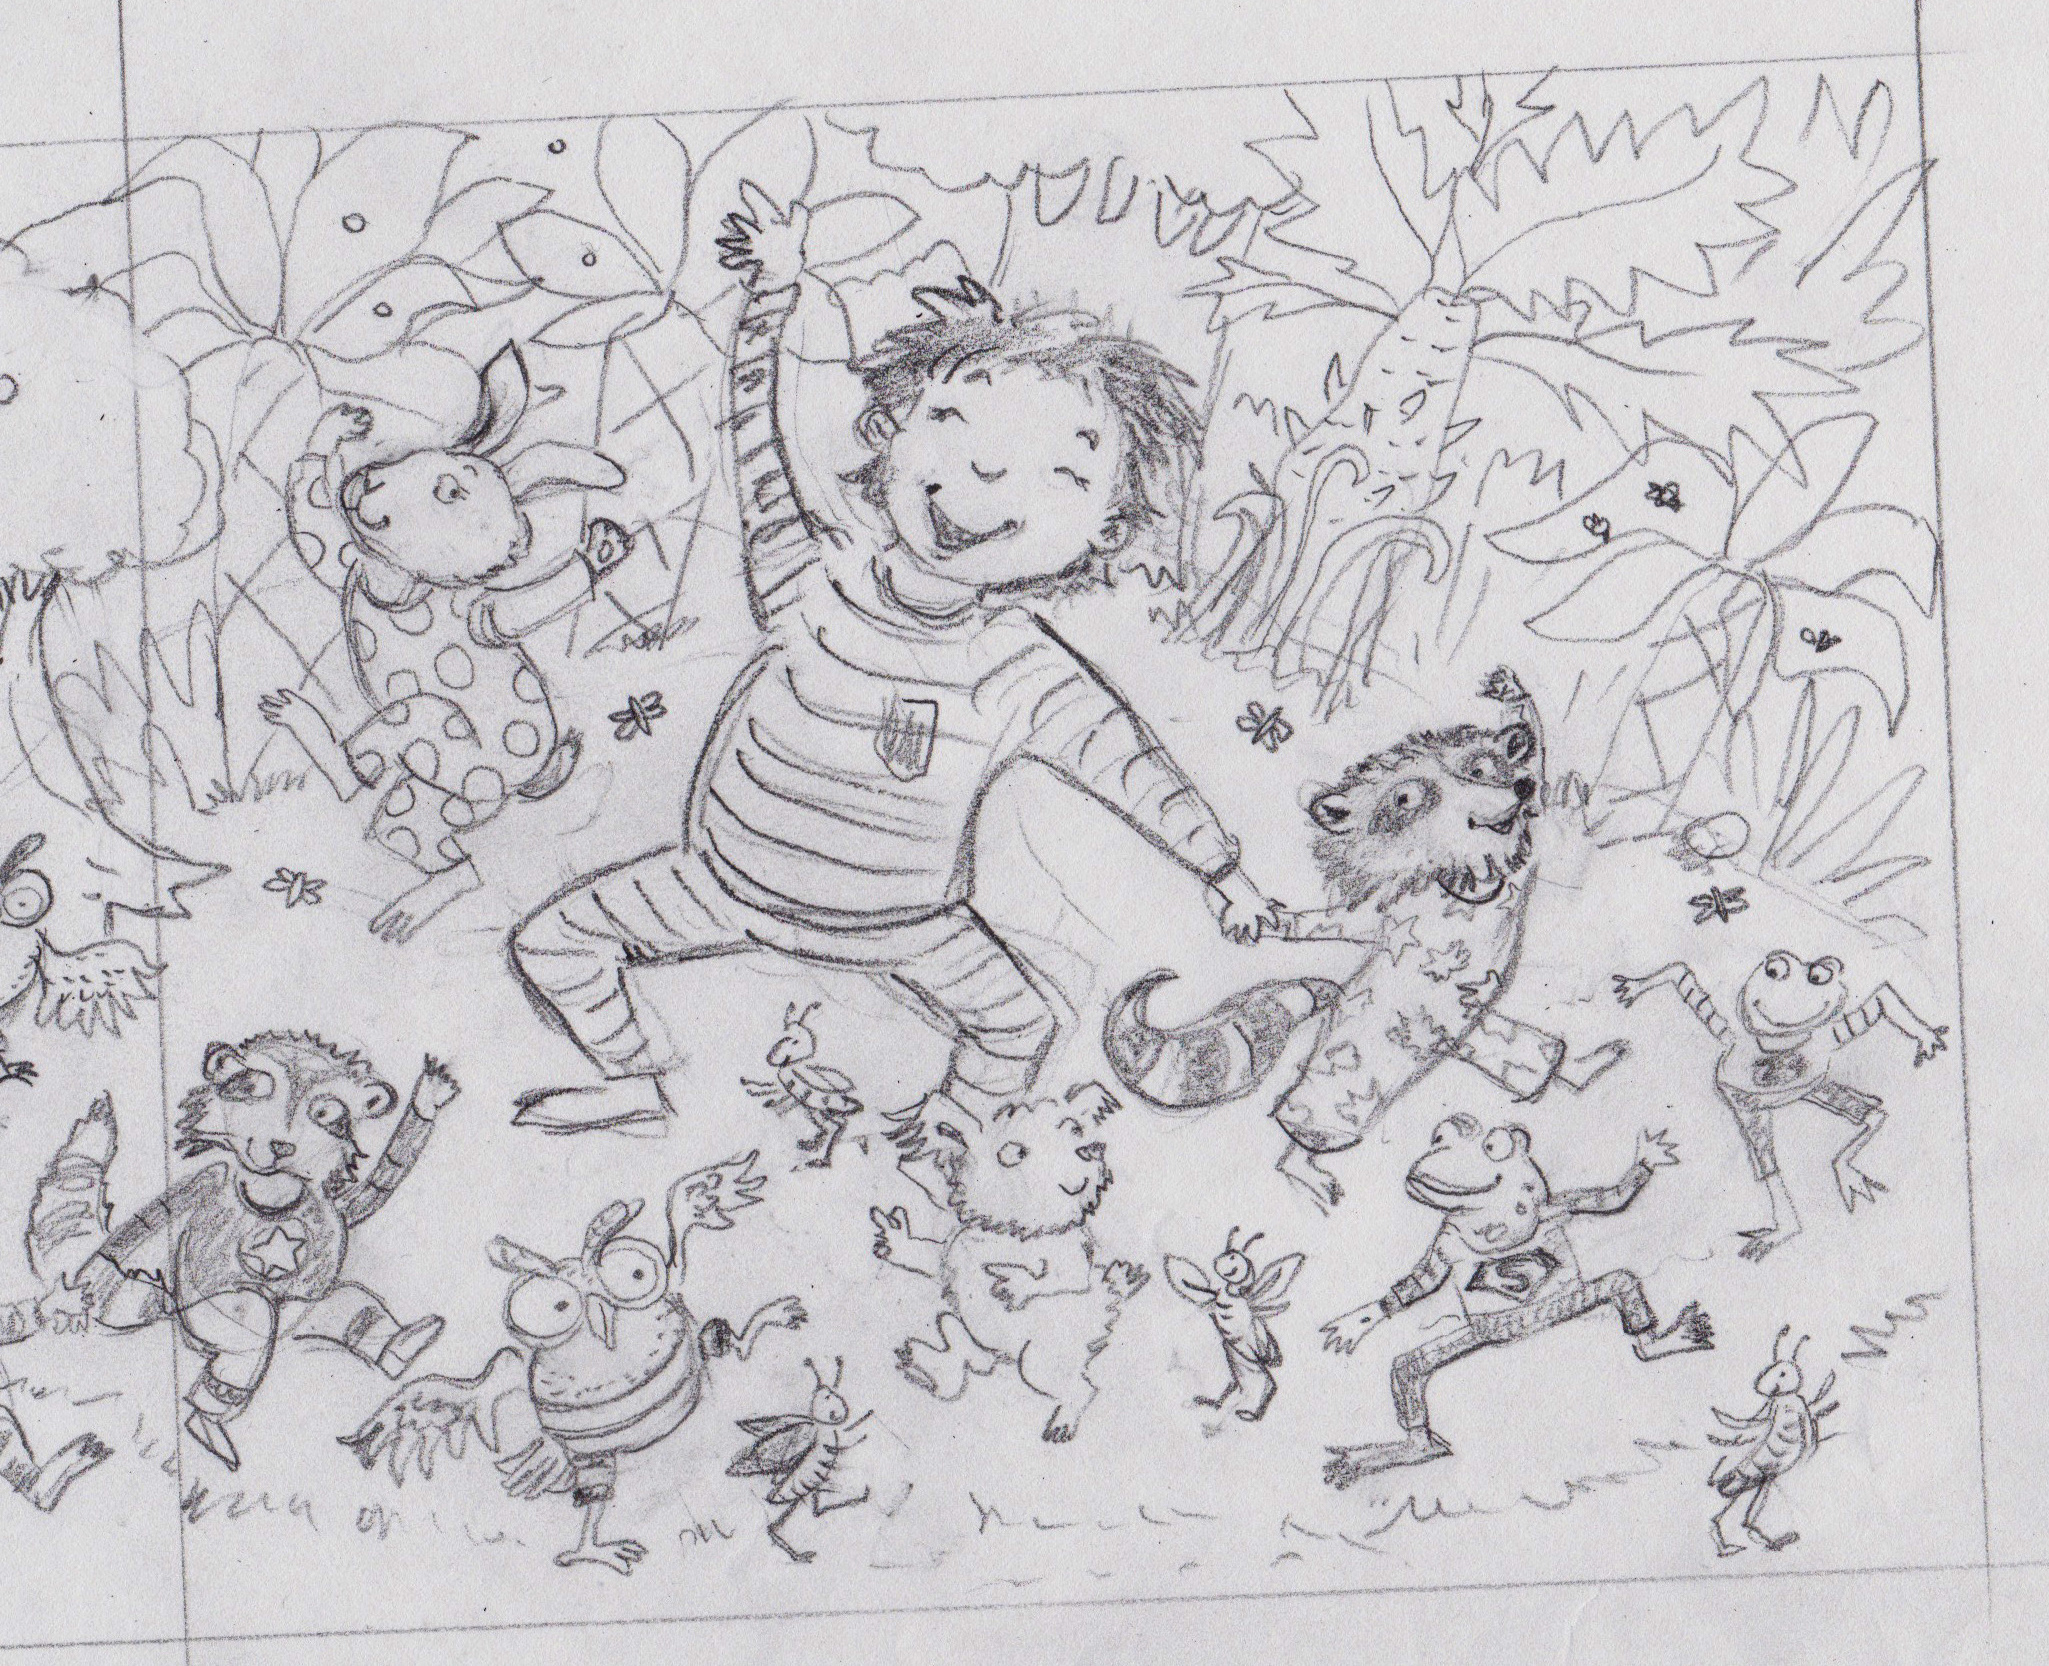 One of the sketches for Good Night, Stinky Face board book written by Lisa McCourt